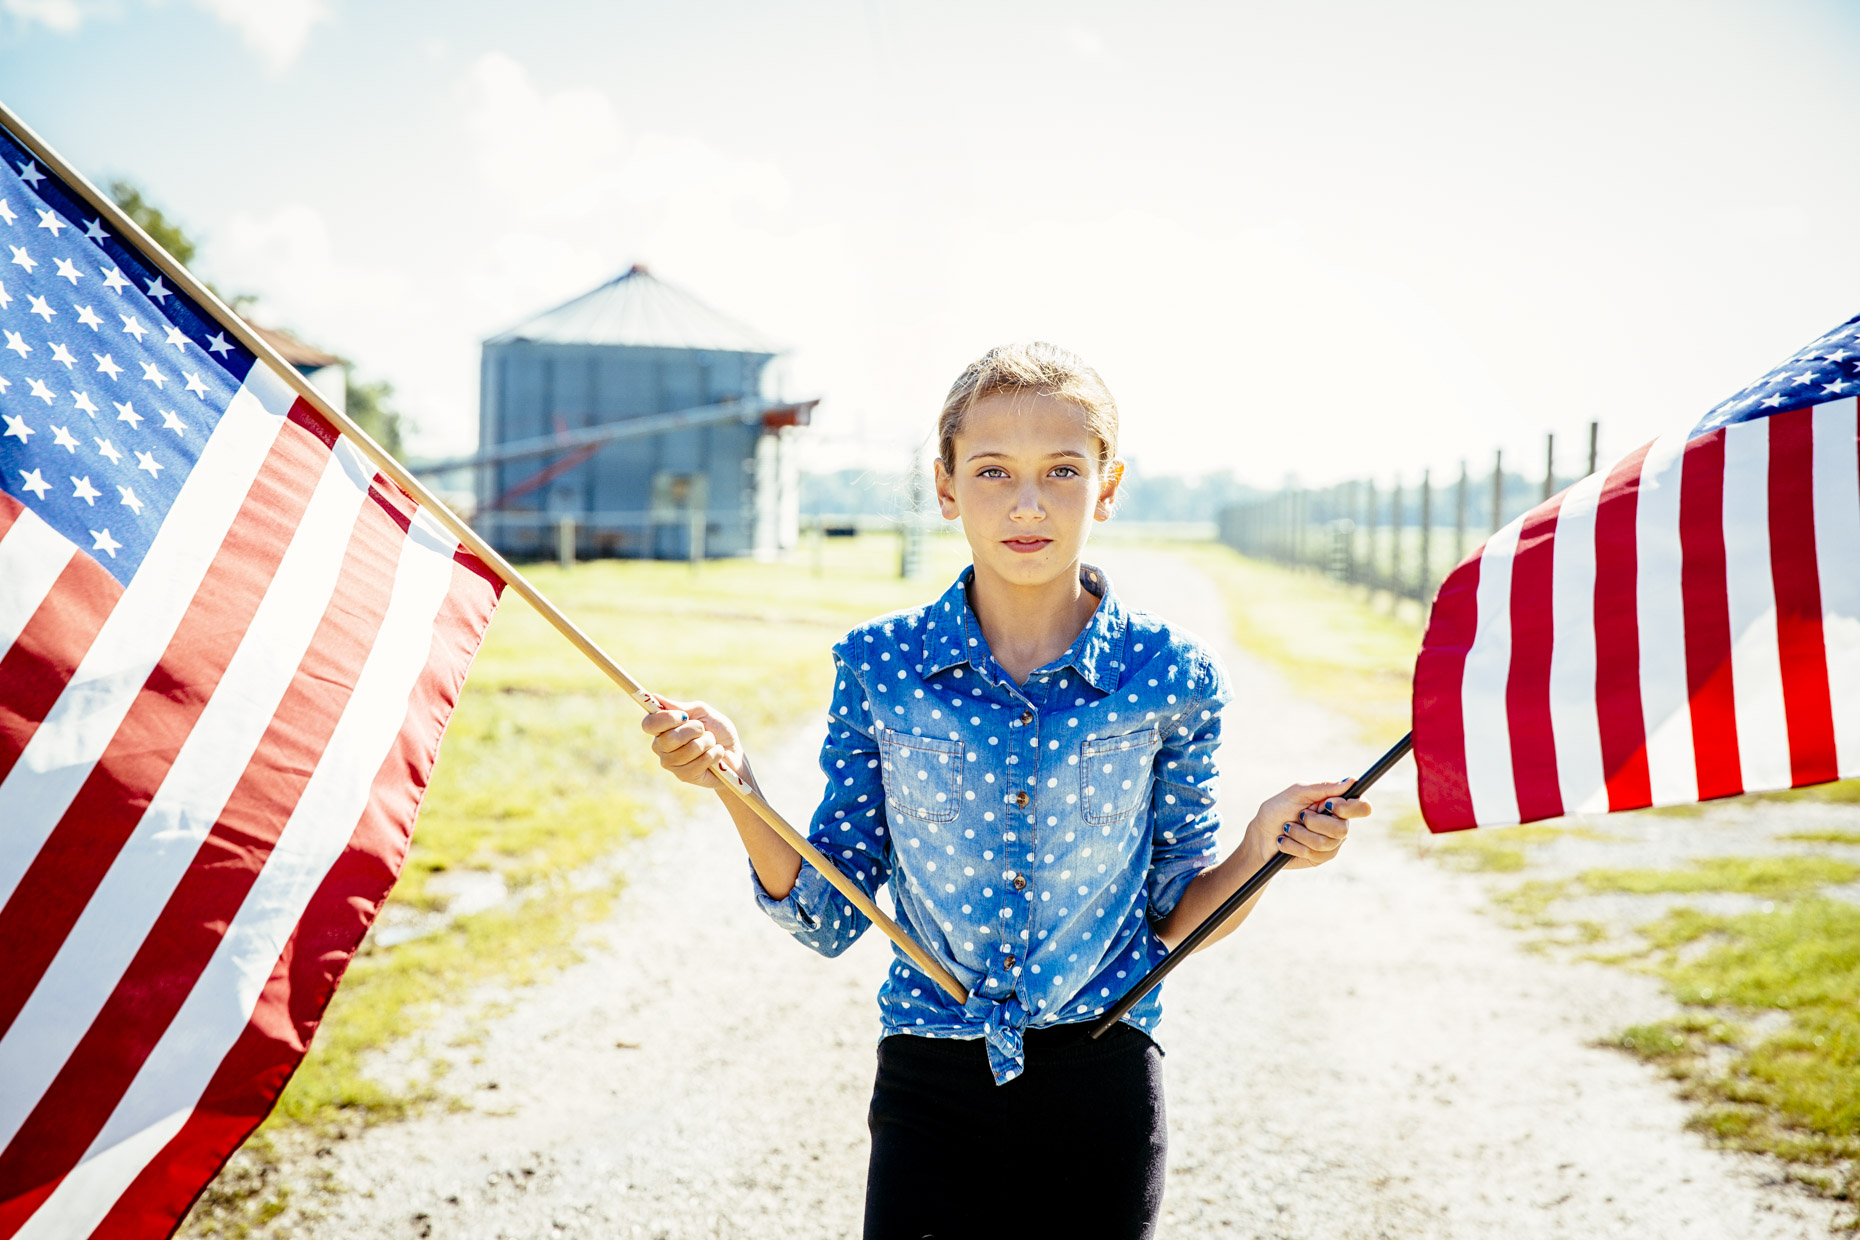 Teen girl holding american flags in front of grain silo on ranch